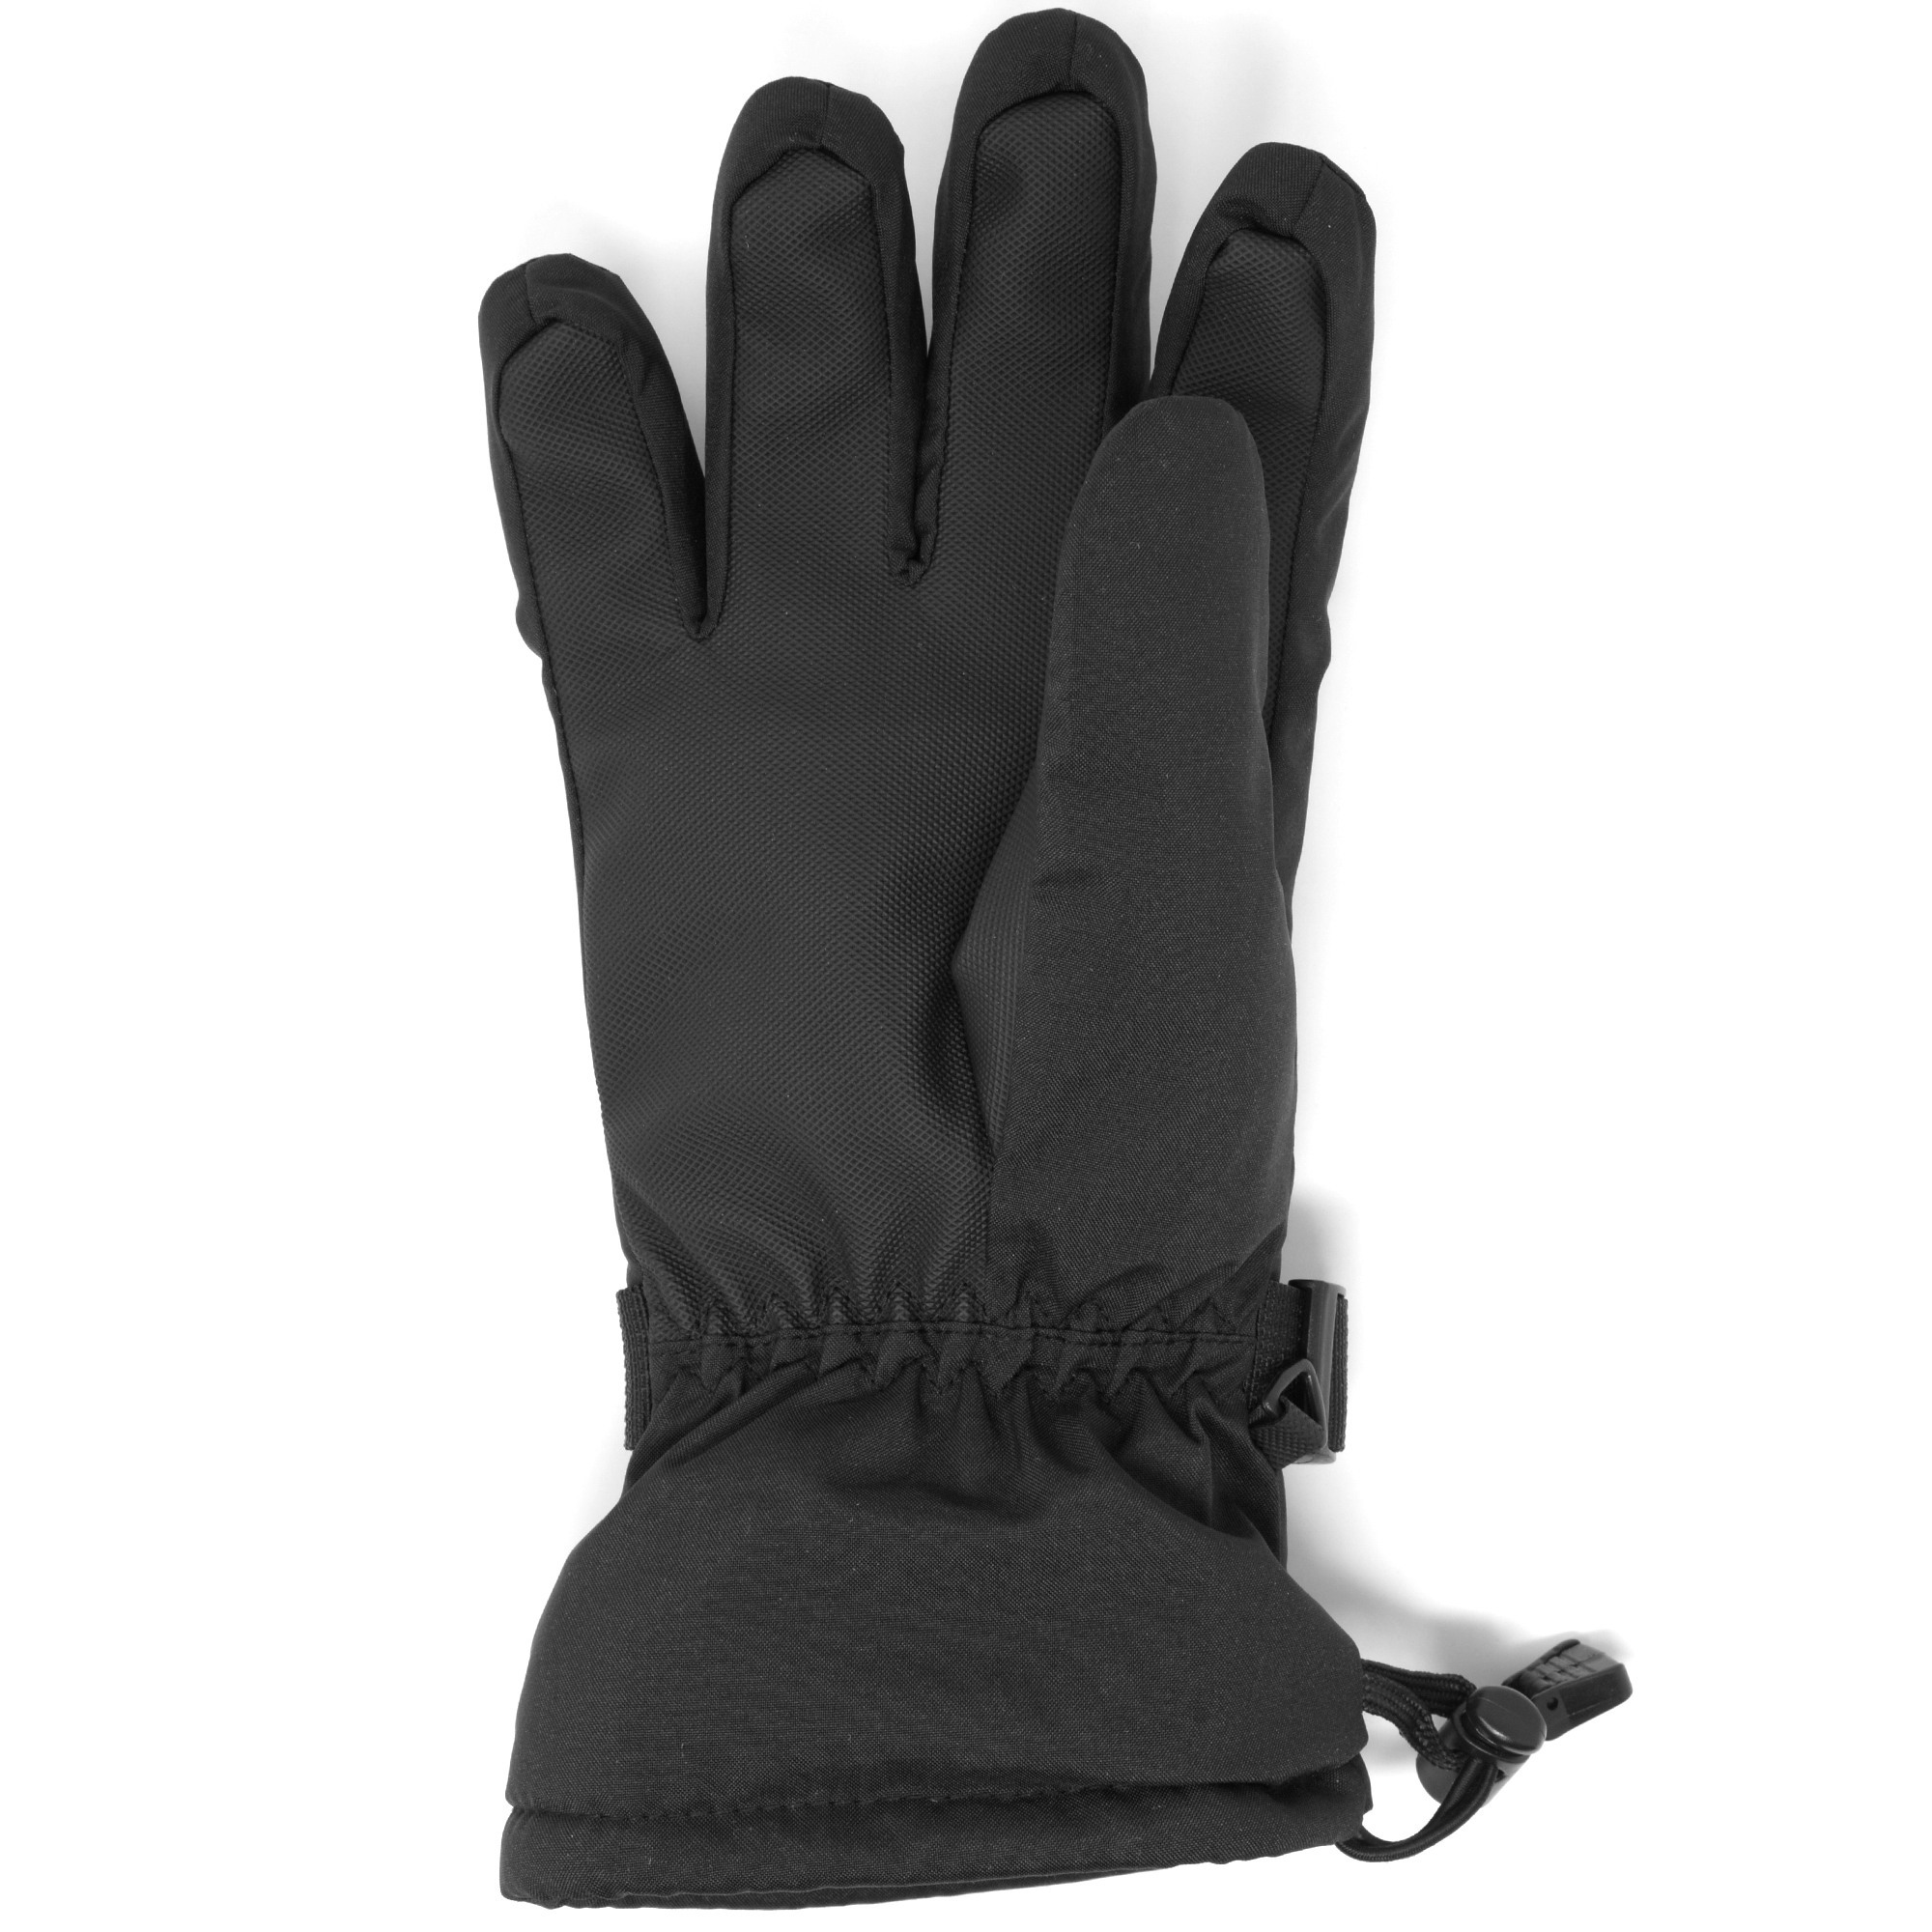 Alpine-Swiss-Mens-Waterproof-Gauntlet-Ski-Gloves-Winter-Sport-Snow-3M-Thinsulate